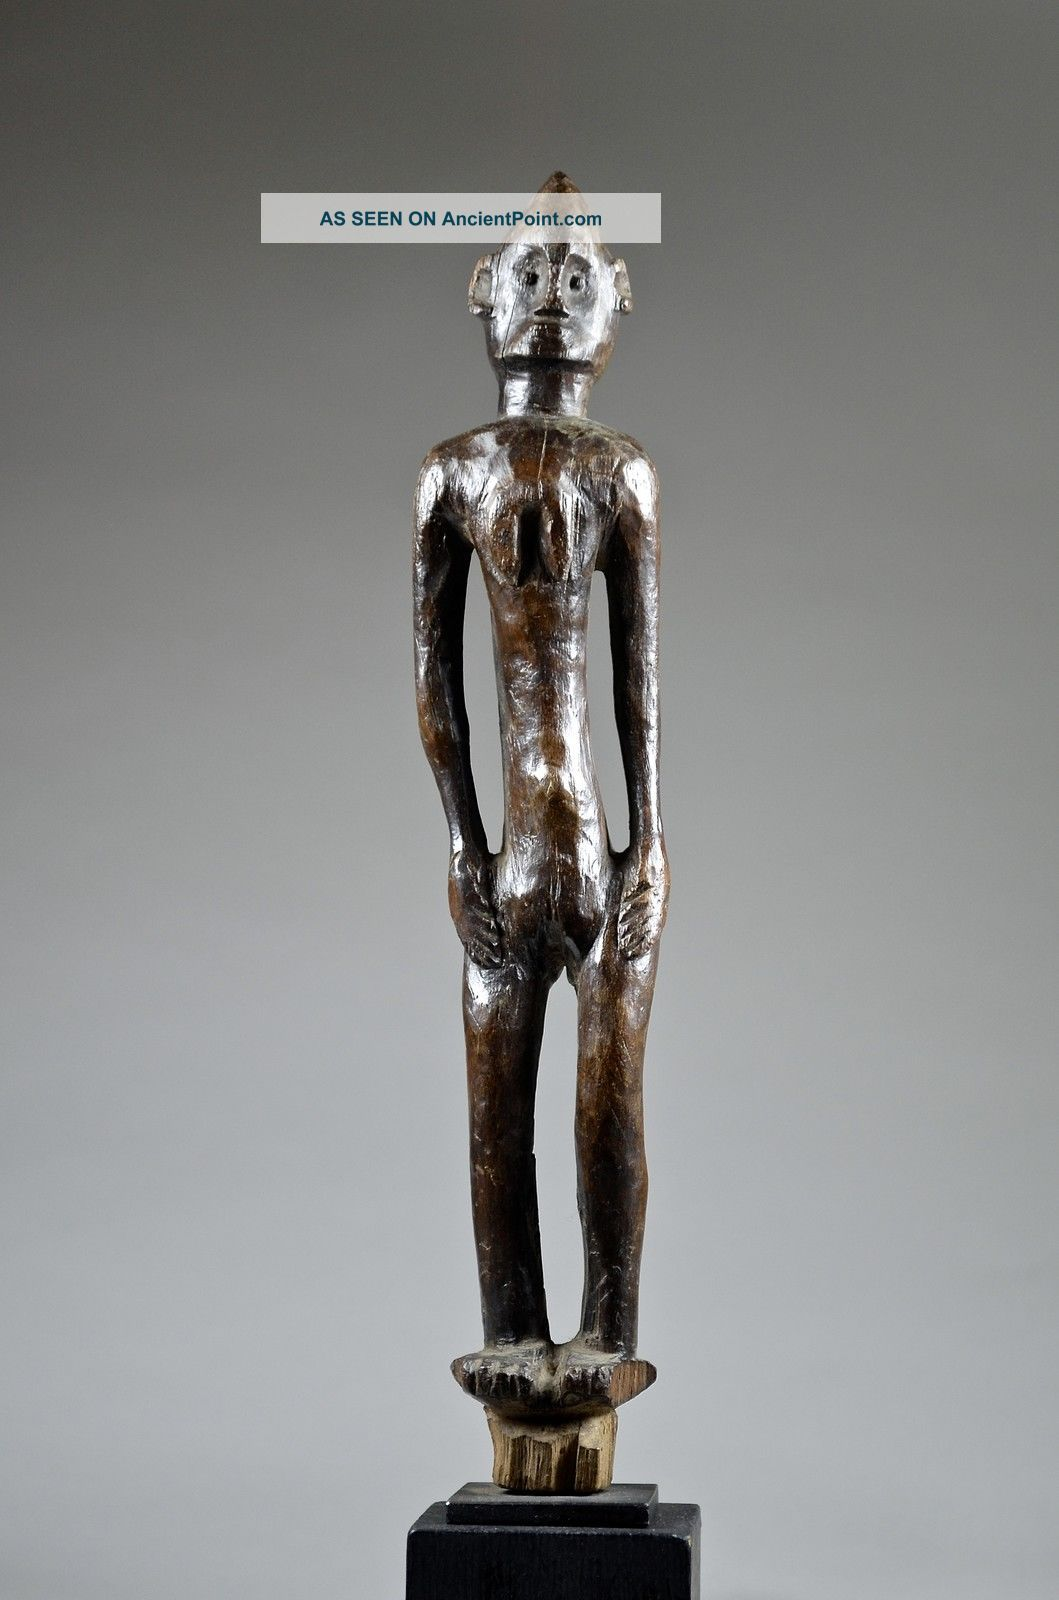 Elegant Tanzanian Female Figure On Stand - Artenegro Gallery African Tribal Arts Sculptures & Statues photo